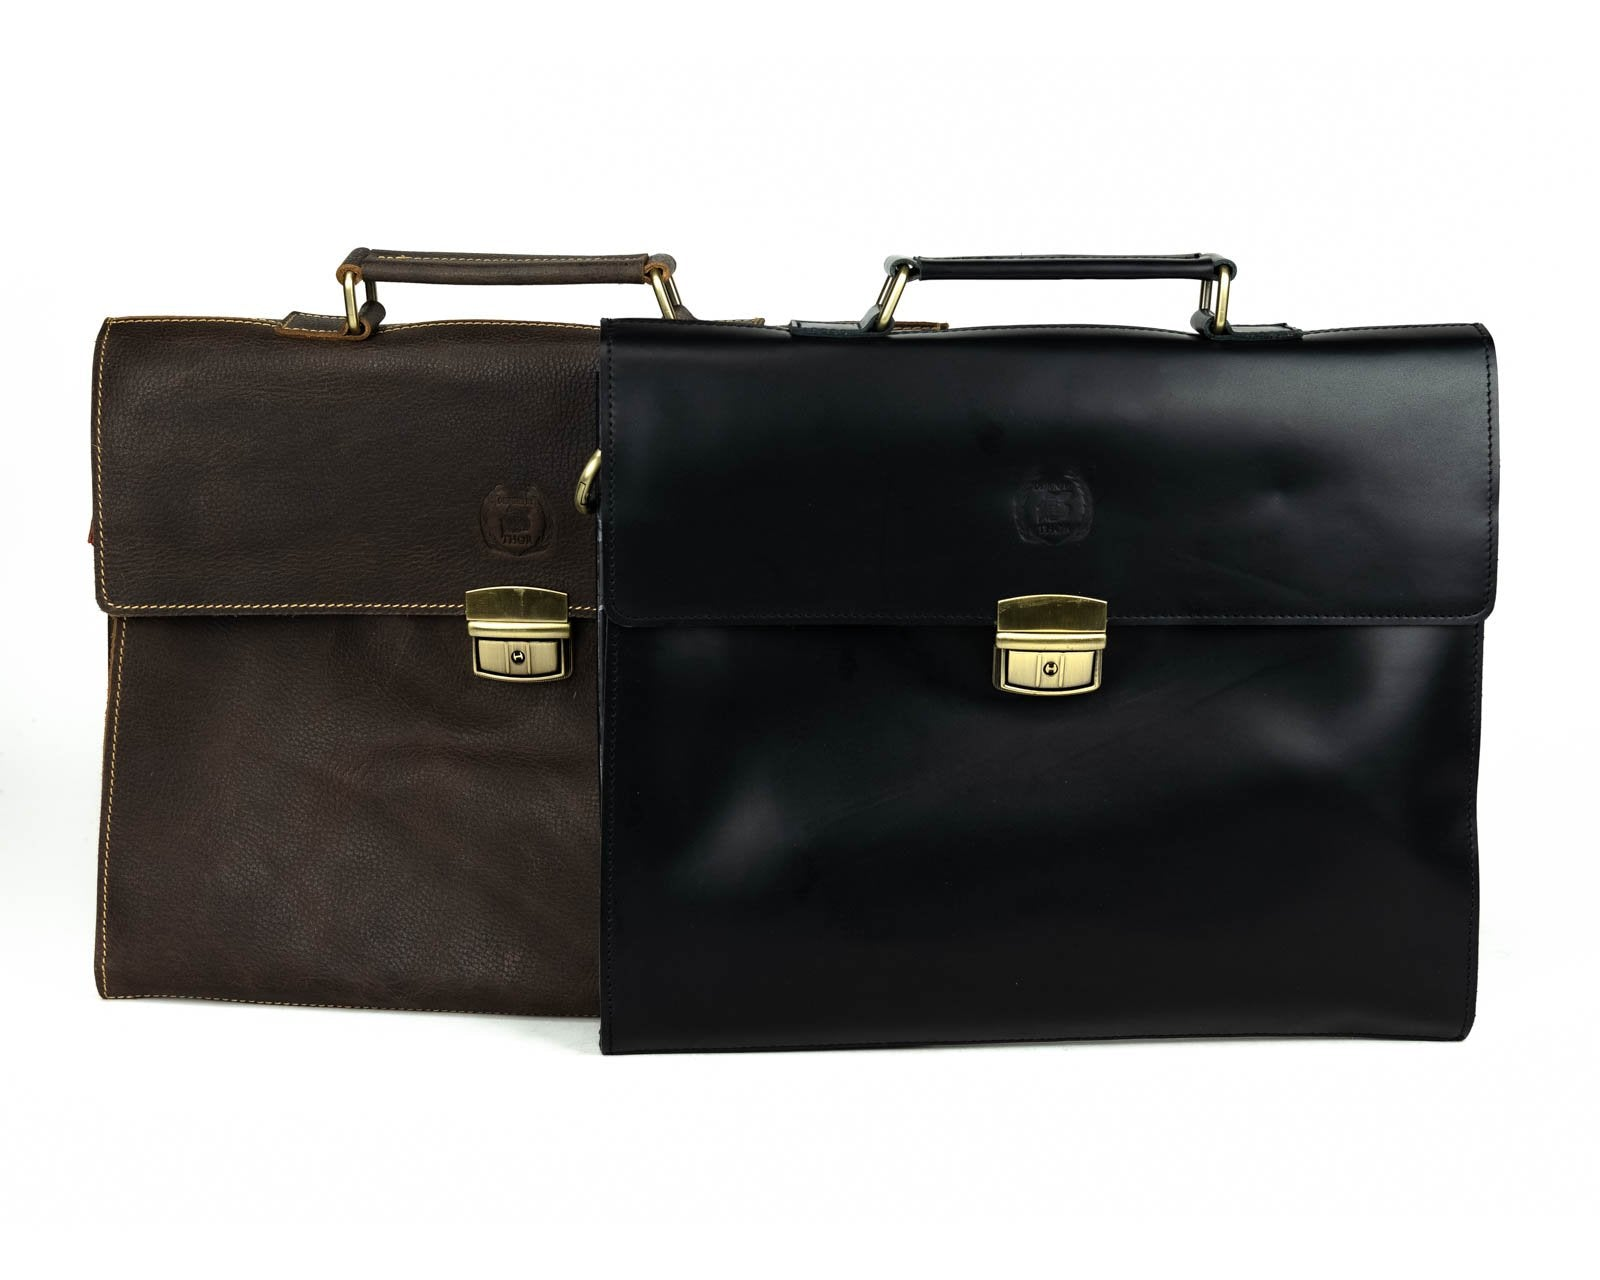 The Emerson Briefcase